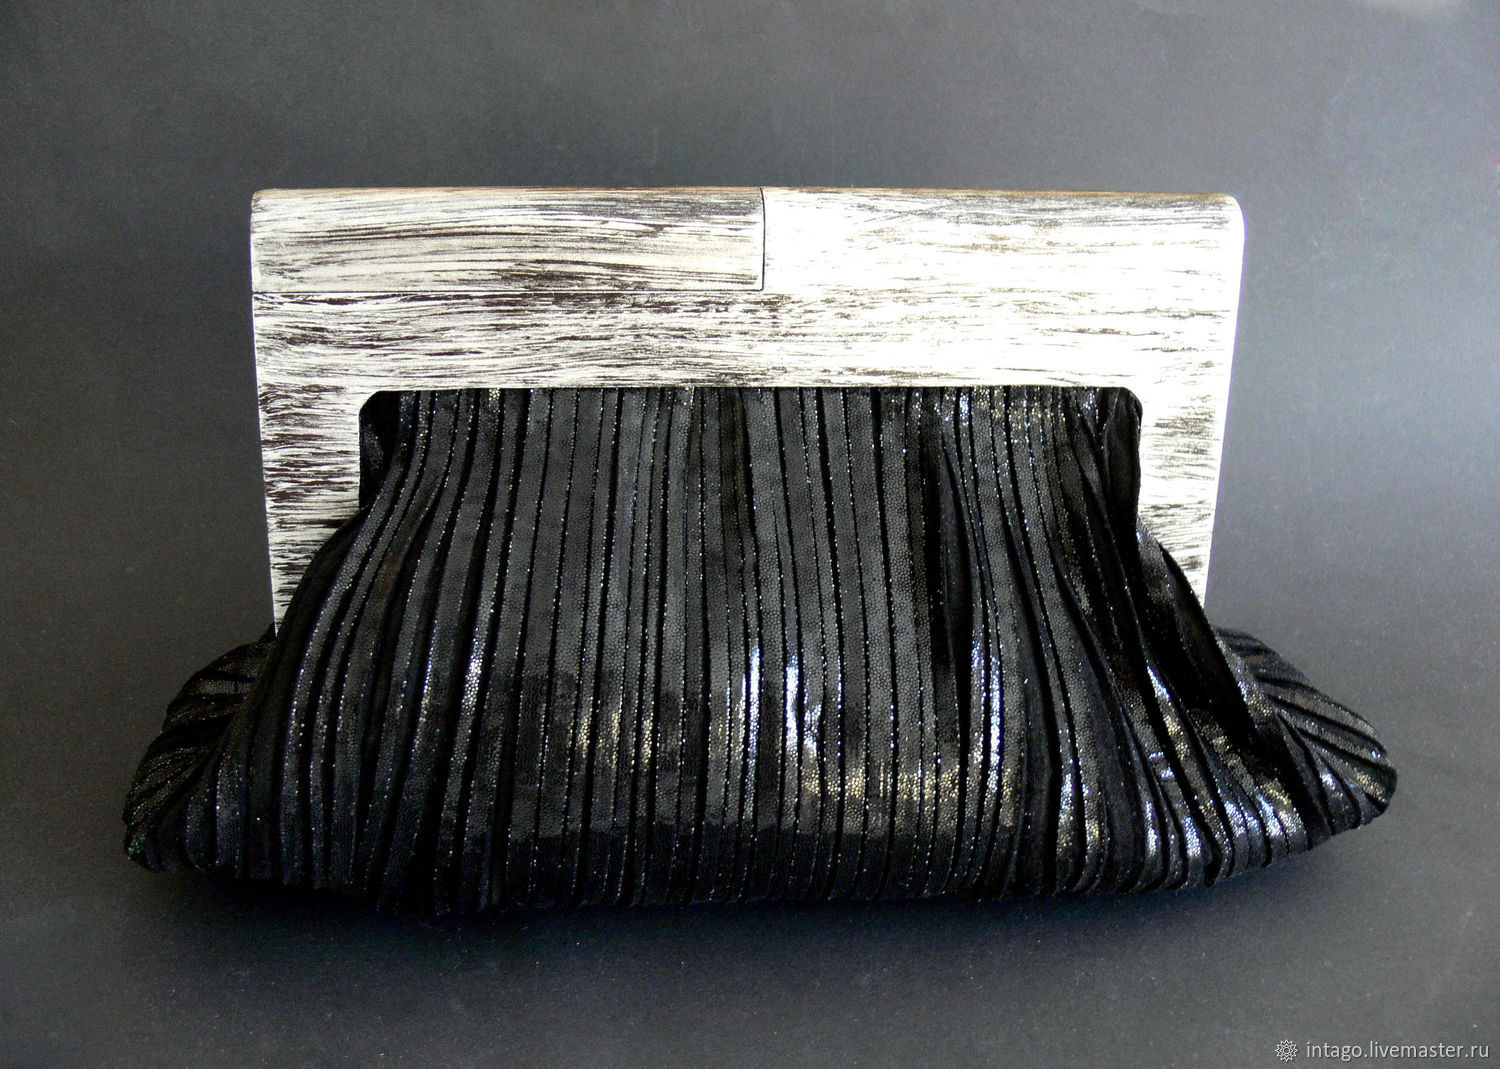 Black leather clutch with wooden clasp, Clutches, Novosibirsk,  Фото №1